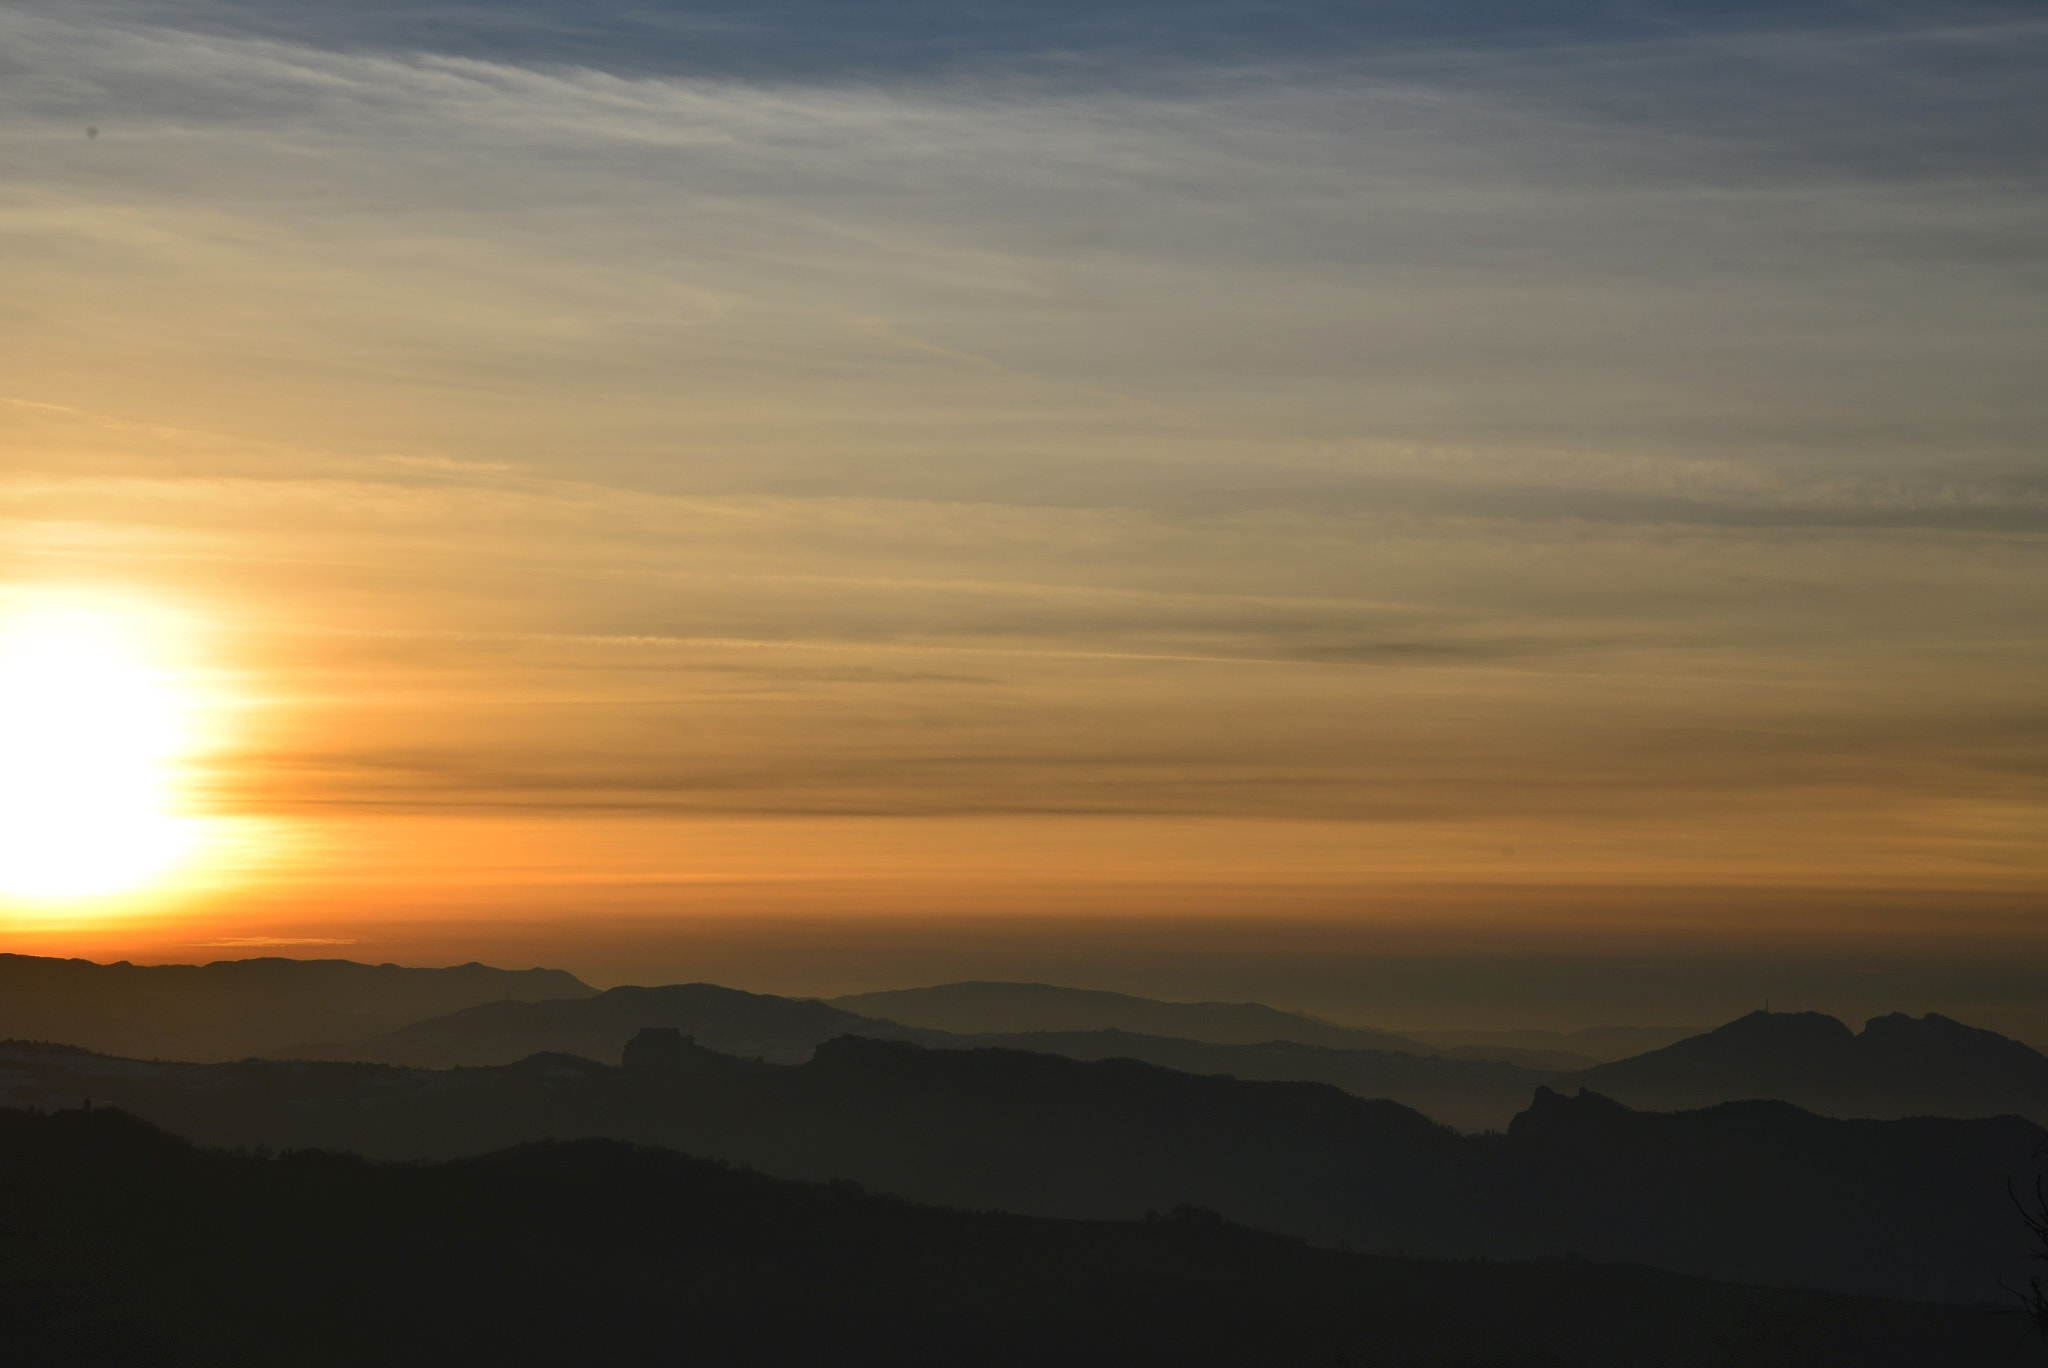 Photograph Sunset on the mountains by Vincent Cecchetti on 500px